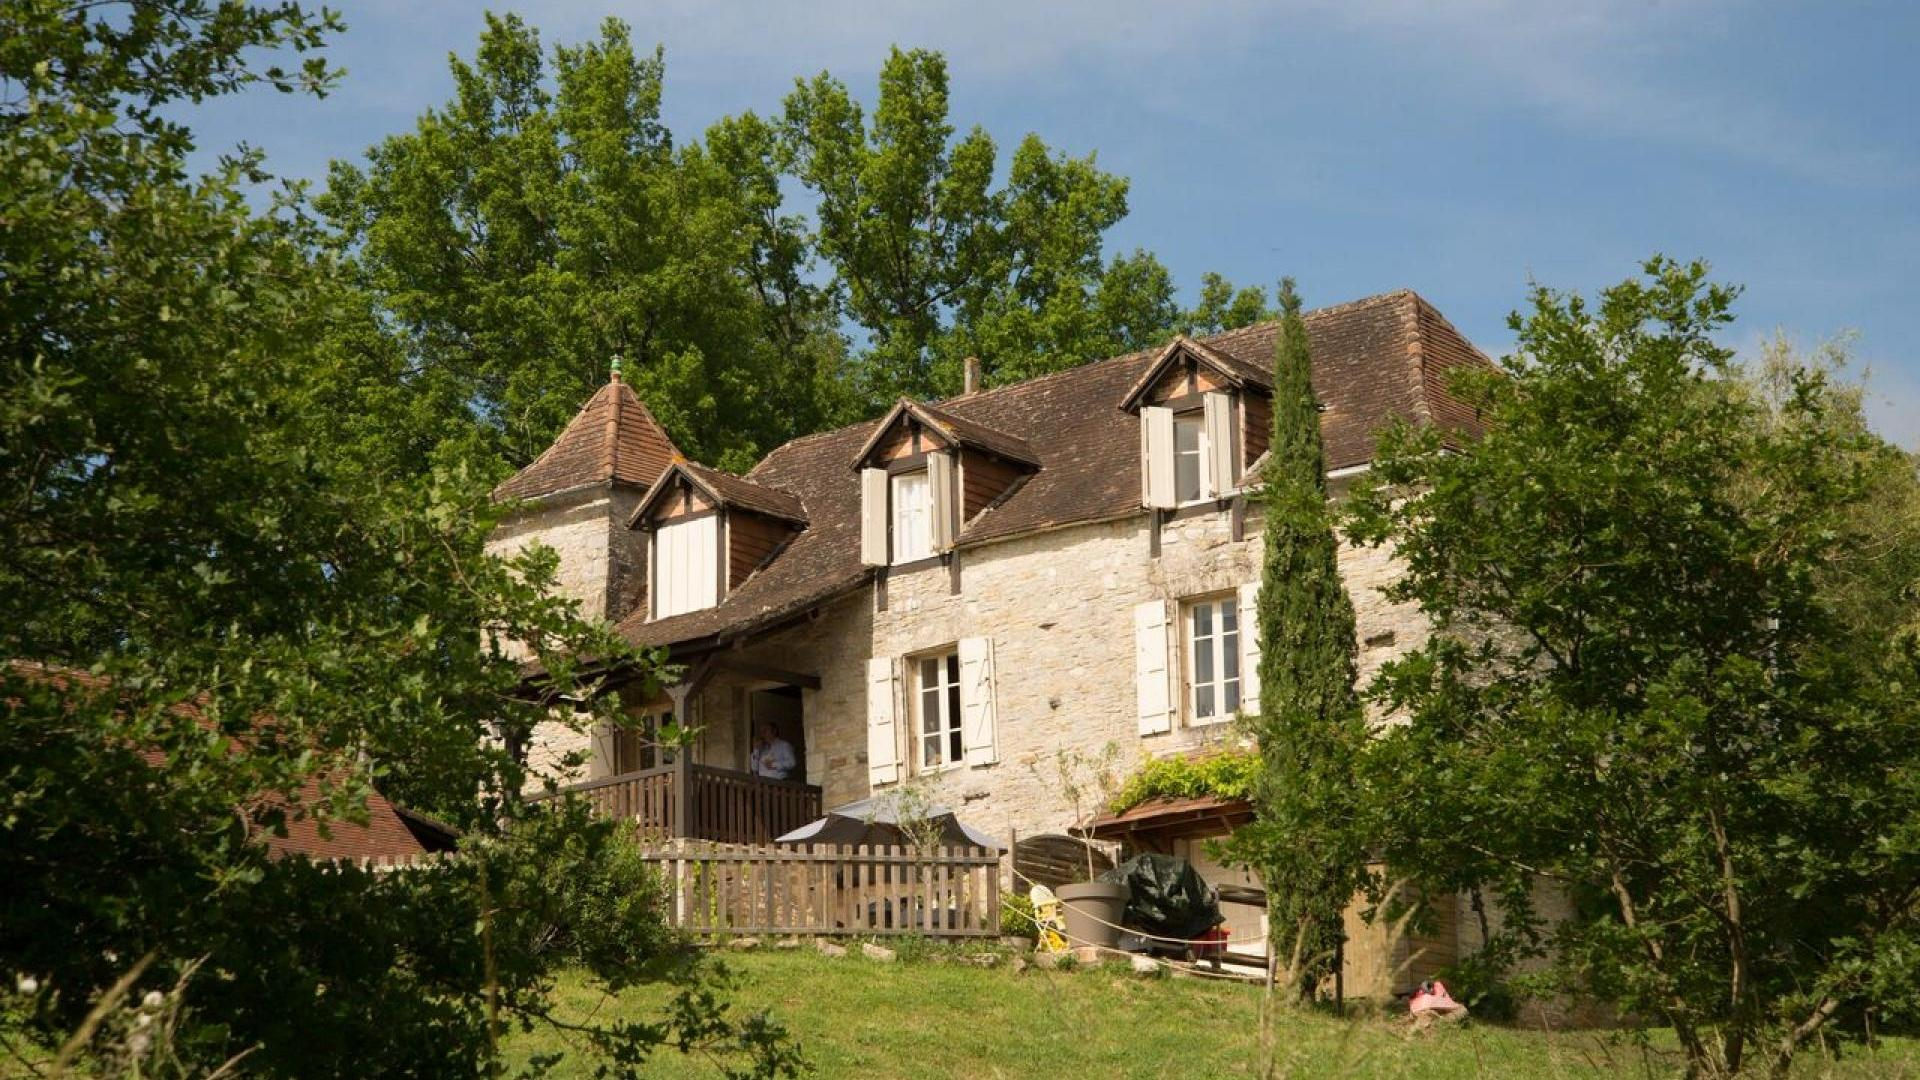 3 Bedroom Cottage/shared facilities in Midi-Pyrenees, France